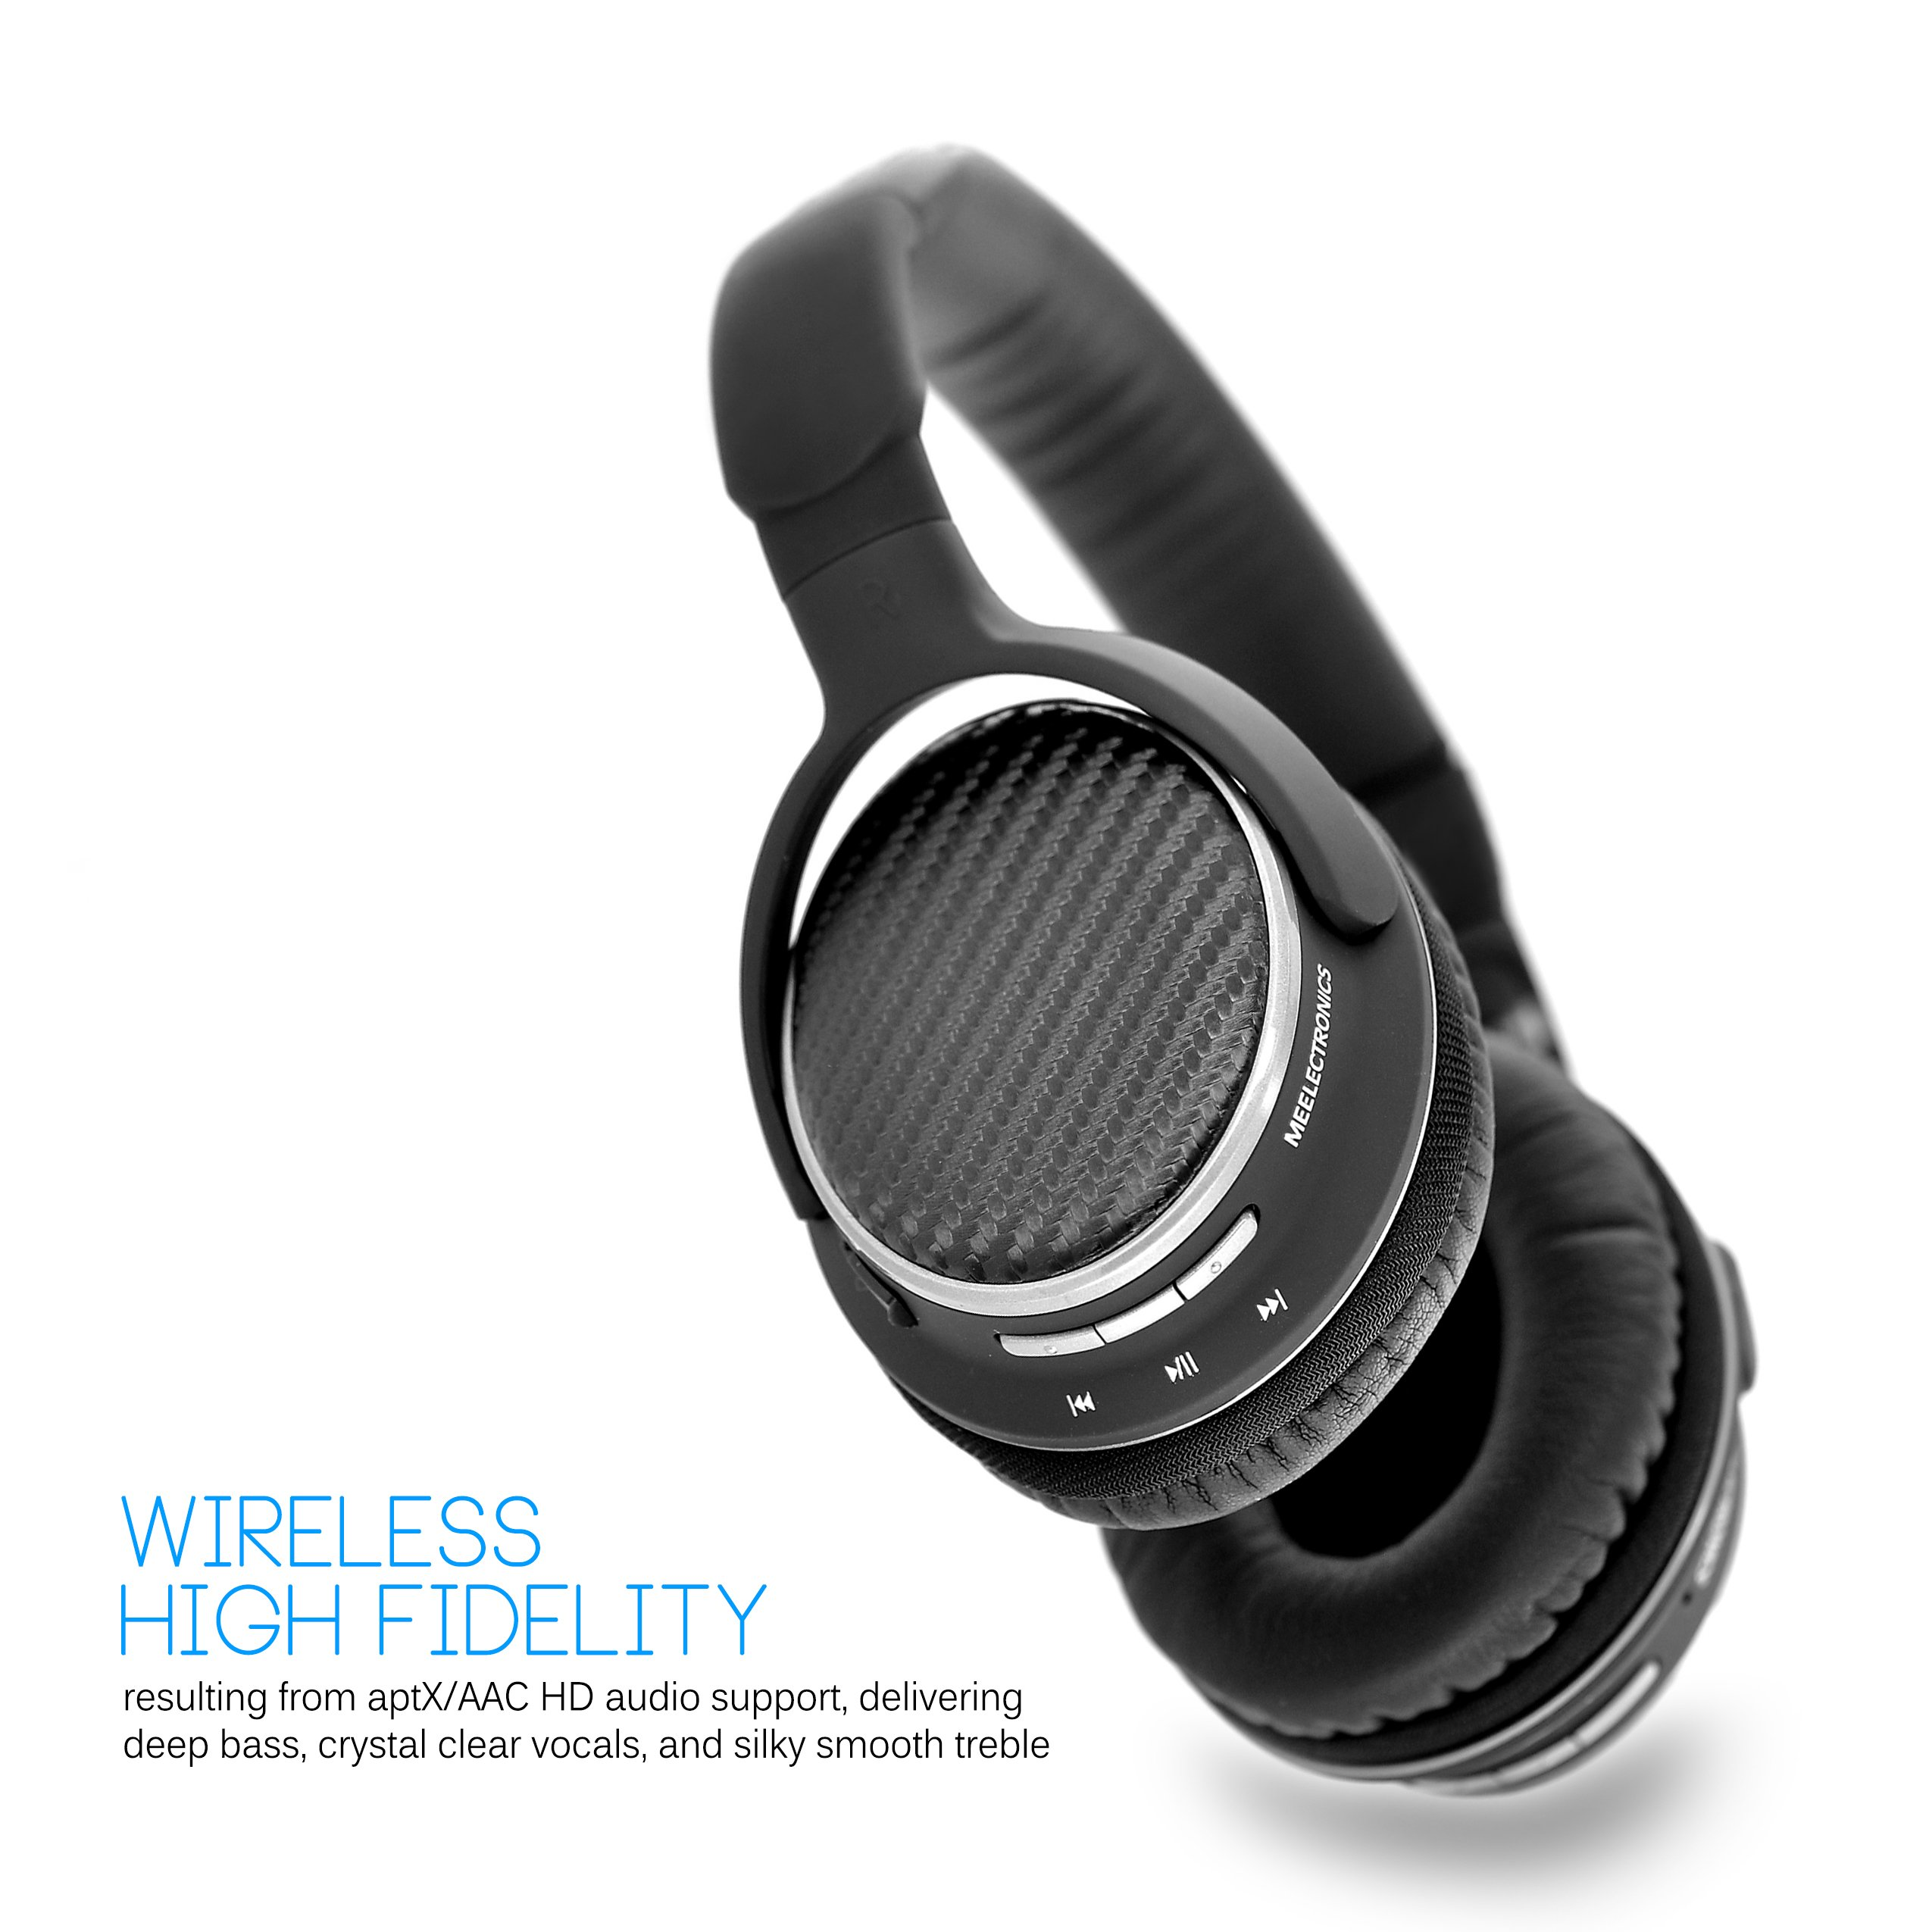 MEE audio Matrix2 Bluetooth Wireless + Wired High Fidelity Headphones with Headset and aptX, AAC, and NFC Support by MEE audio